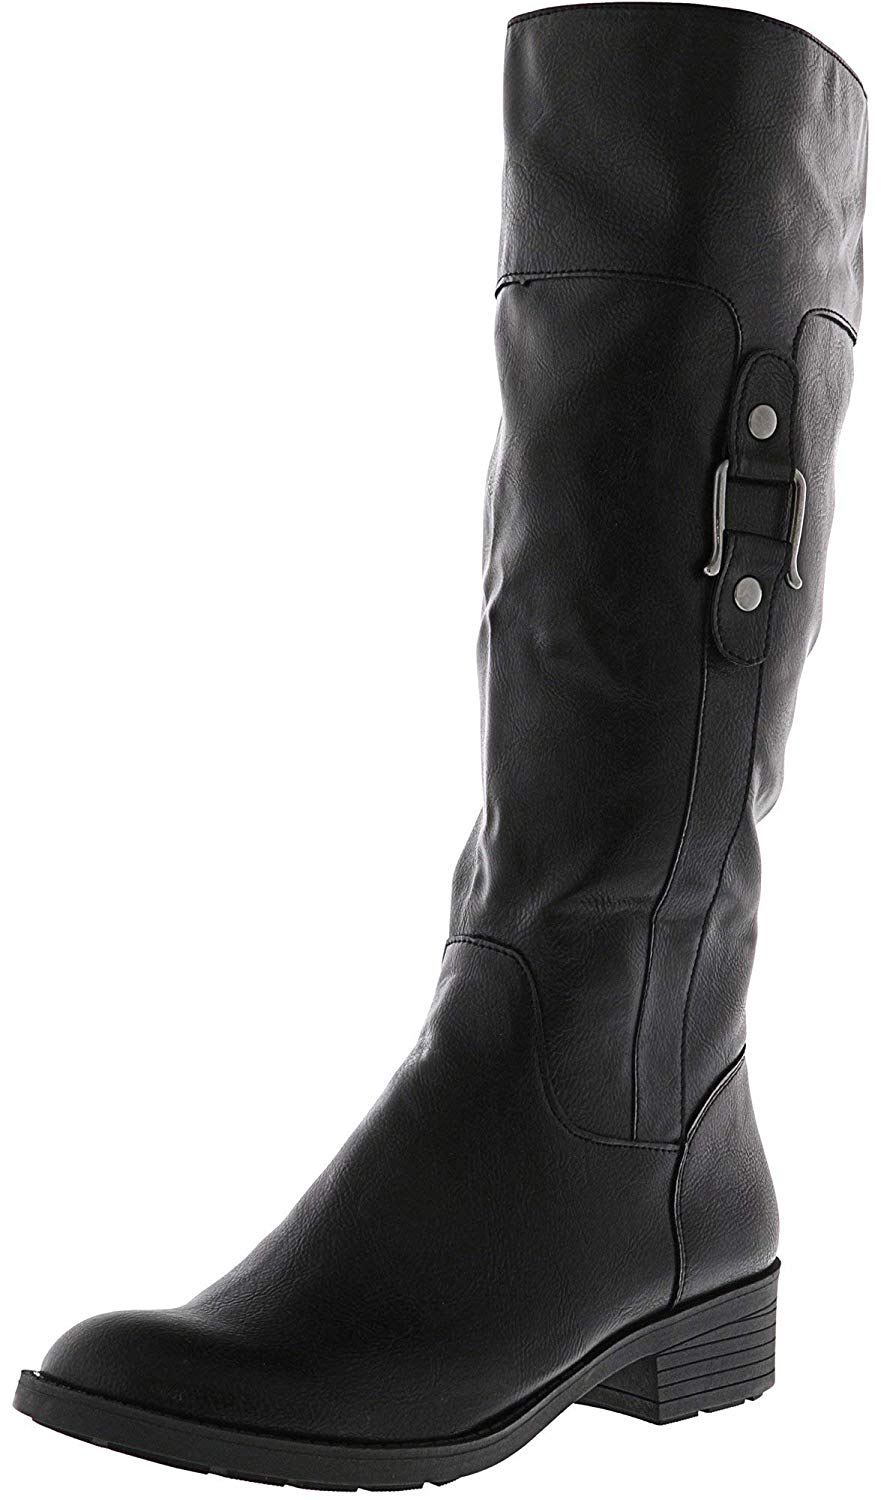 Style & Co. Womens Astarie Closed Toe Mid-Calf Fashion Boots